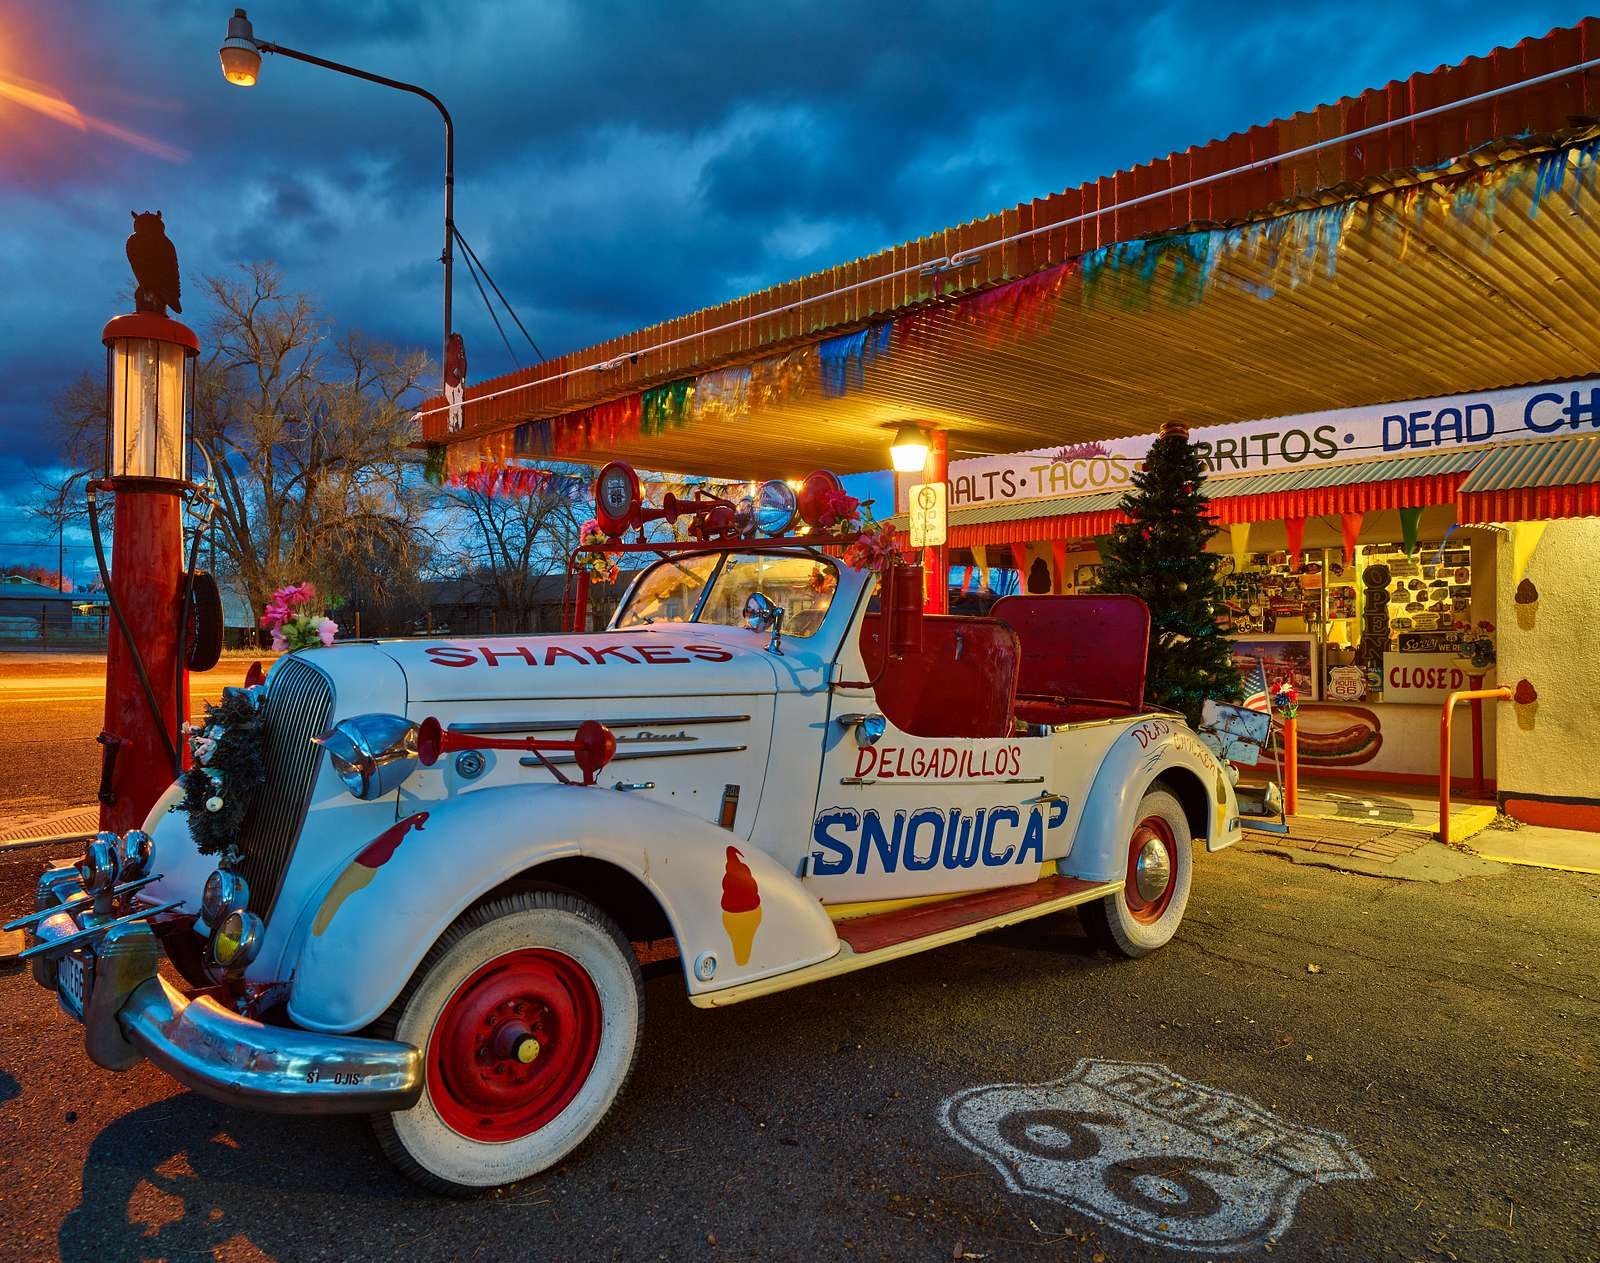 Scene outside Delgadillo's Snow Cap Drive-In restaurant, a historic eatery and roadside attraction in Seligman, Arizona, along old U.S. highway 66